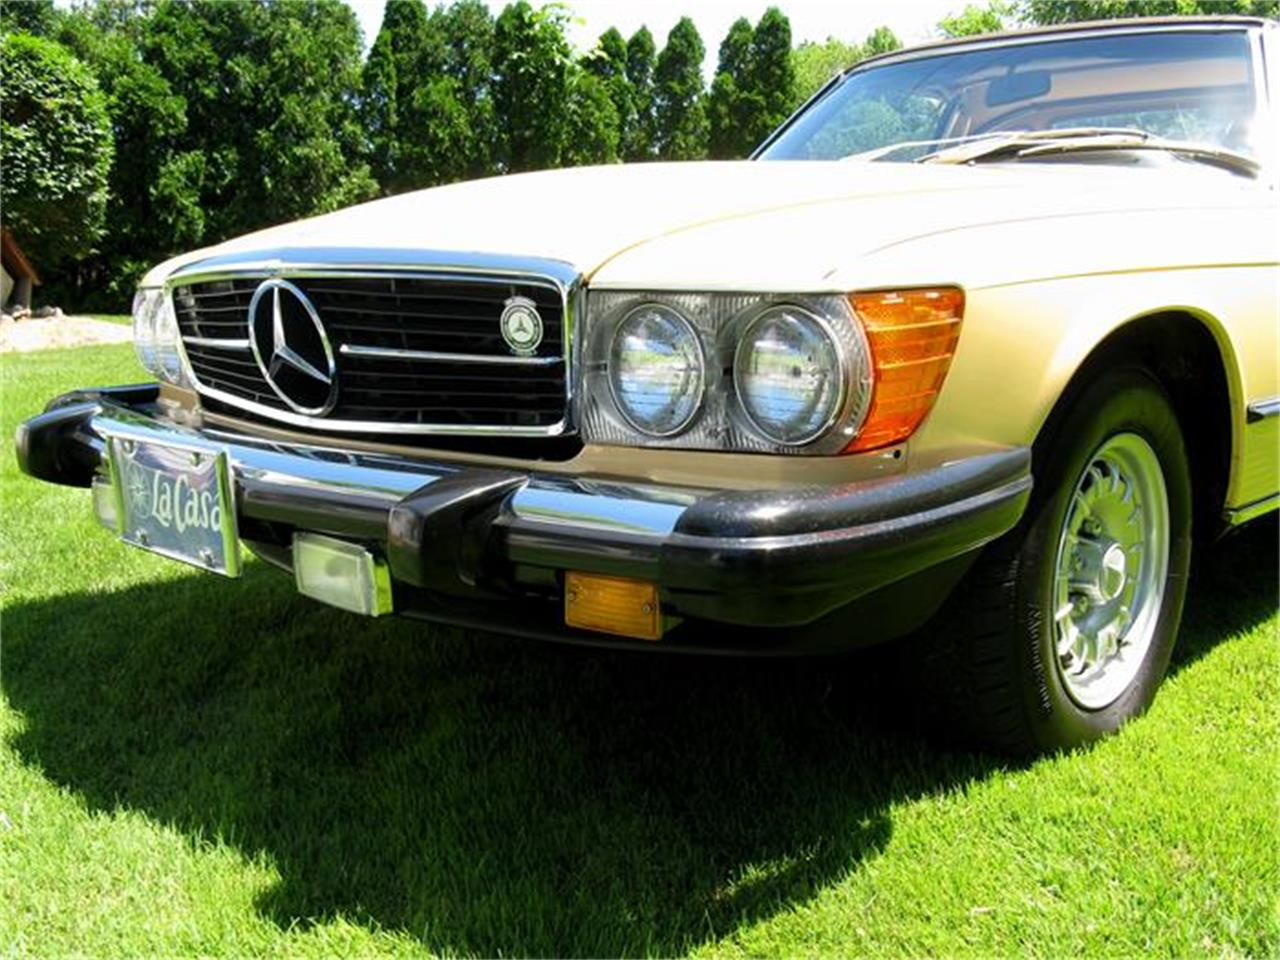 Large Picture of '82 Mercedes-Benz 380SL located in Ohio - $29,900.00 Offered by Affordable Classic Motorcars - BS6W